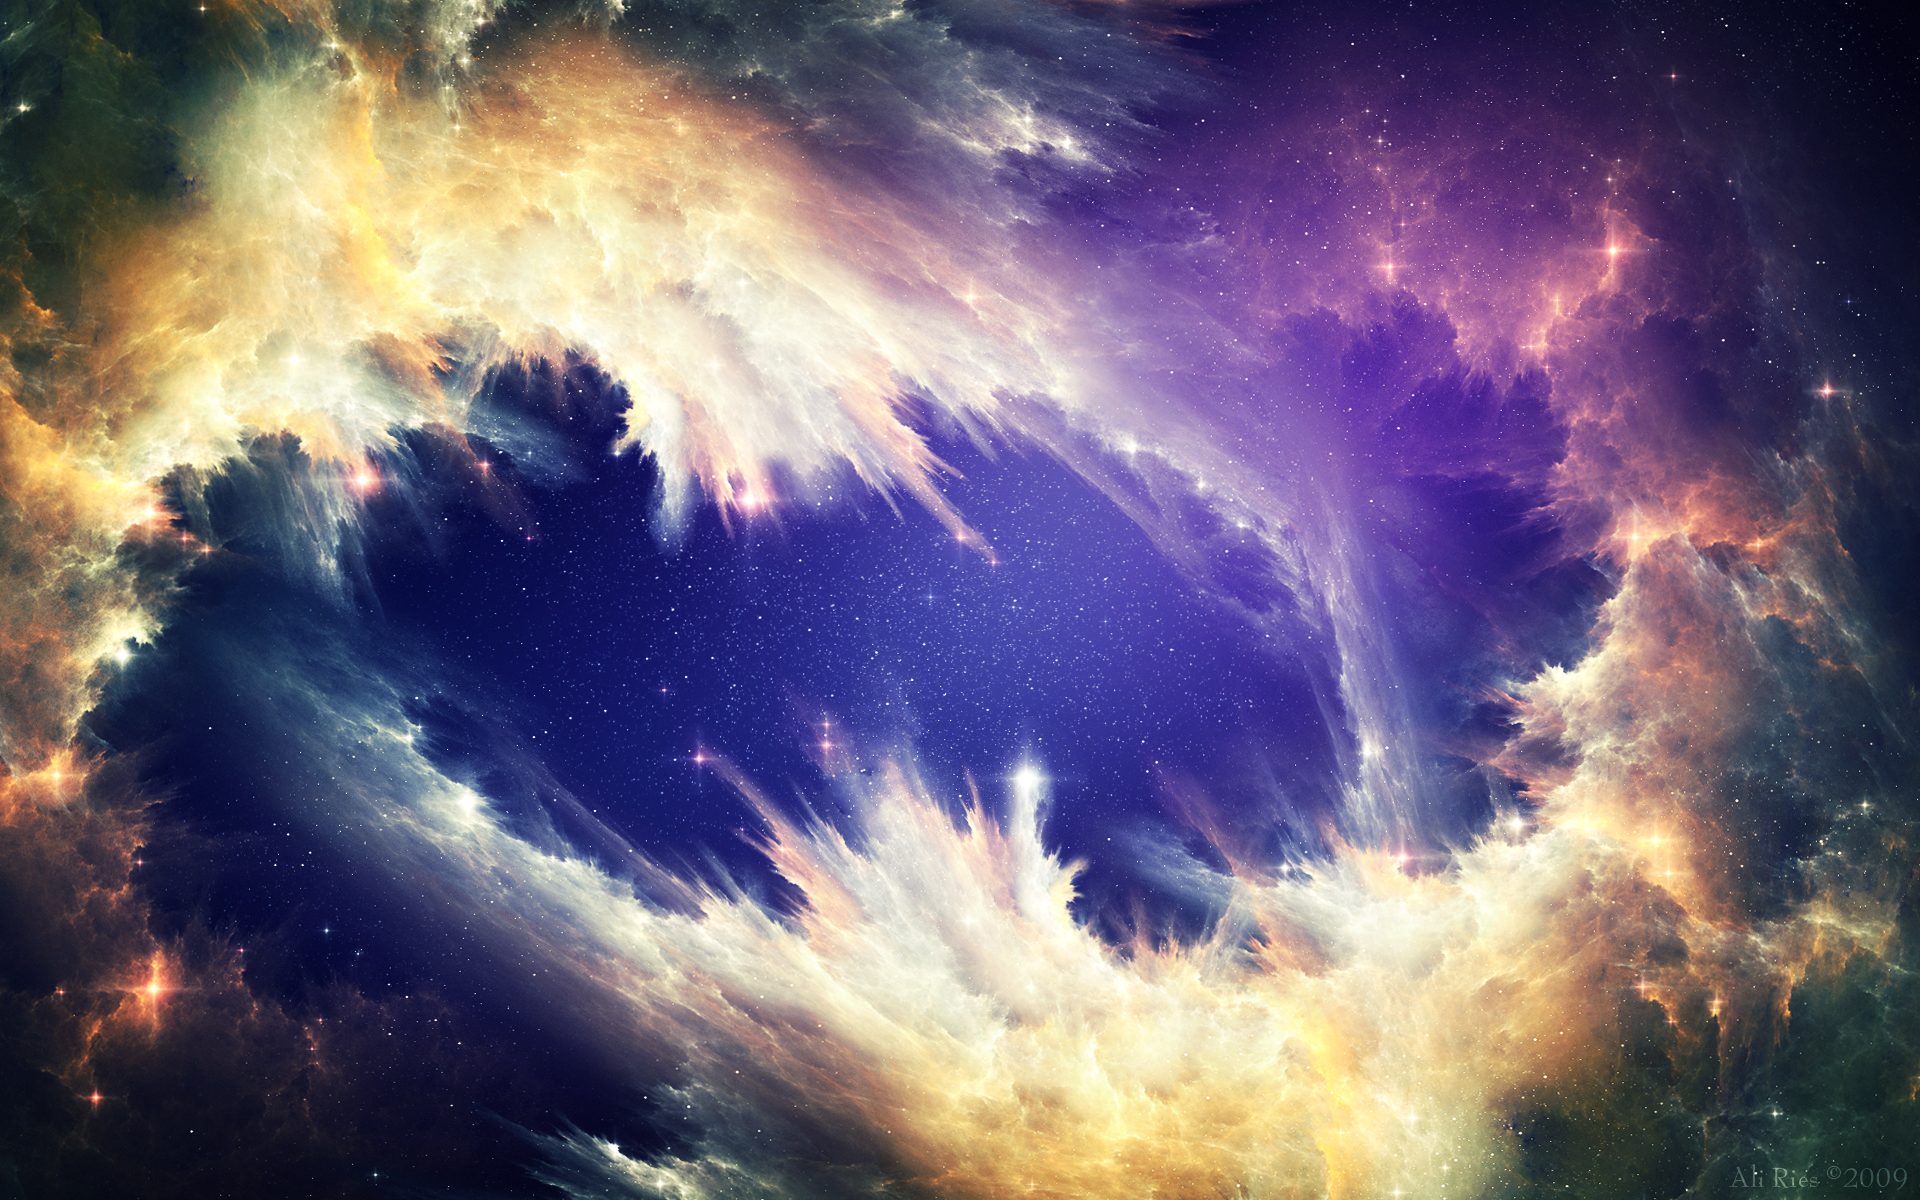 Space fantasy wallpaper set 25 awesome wallpapers - Spacey wallpaper ...